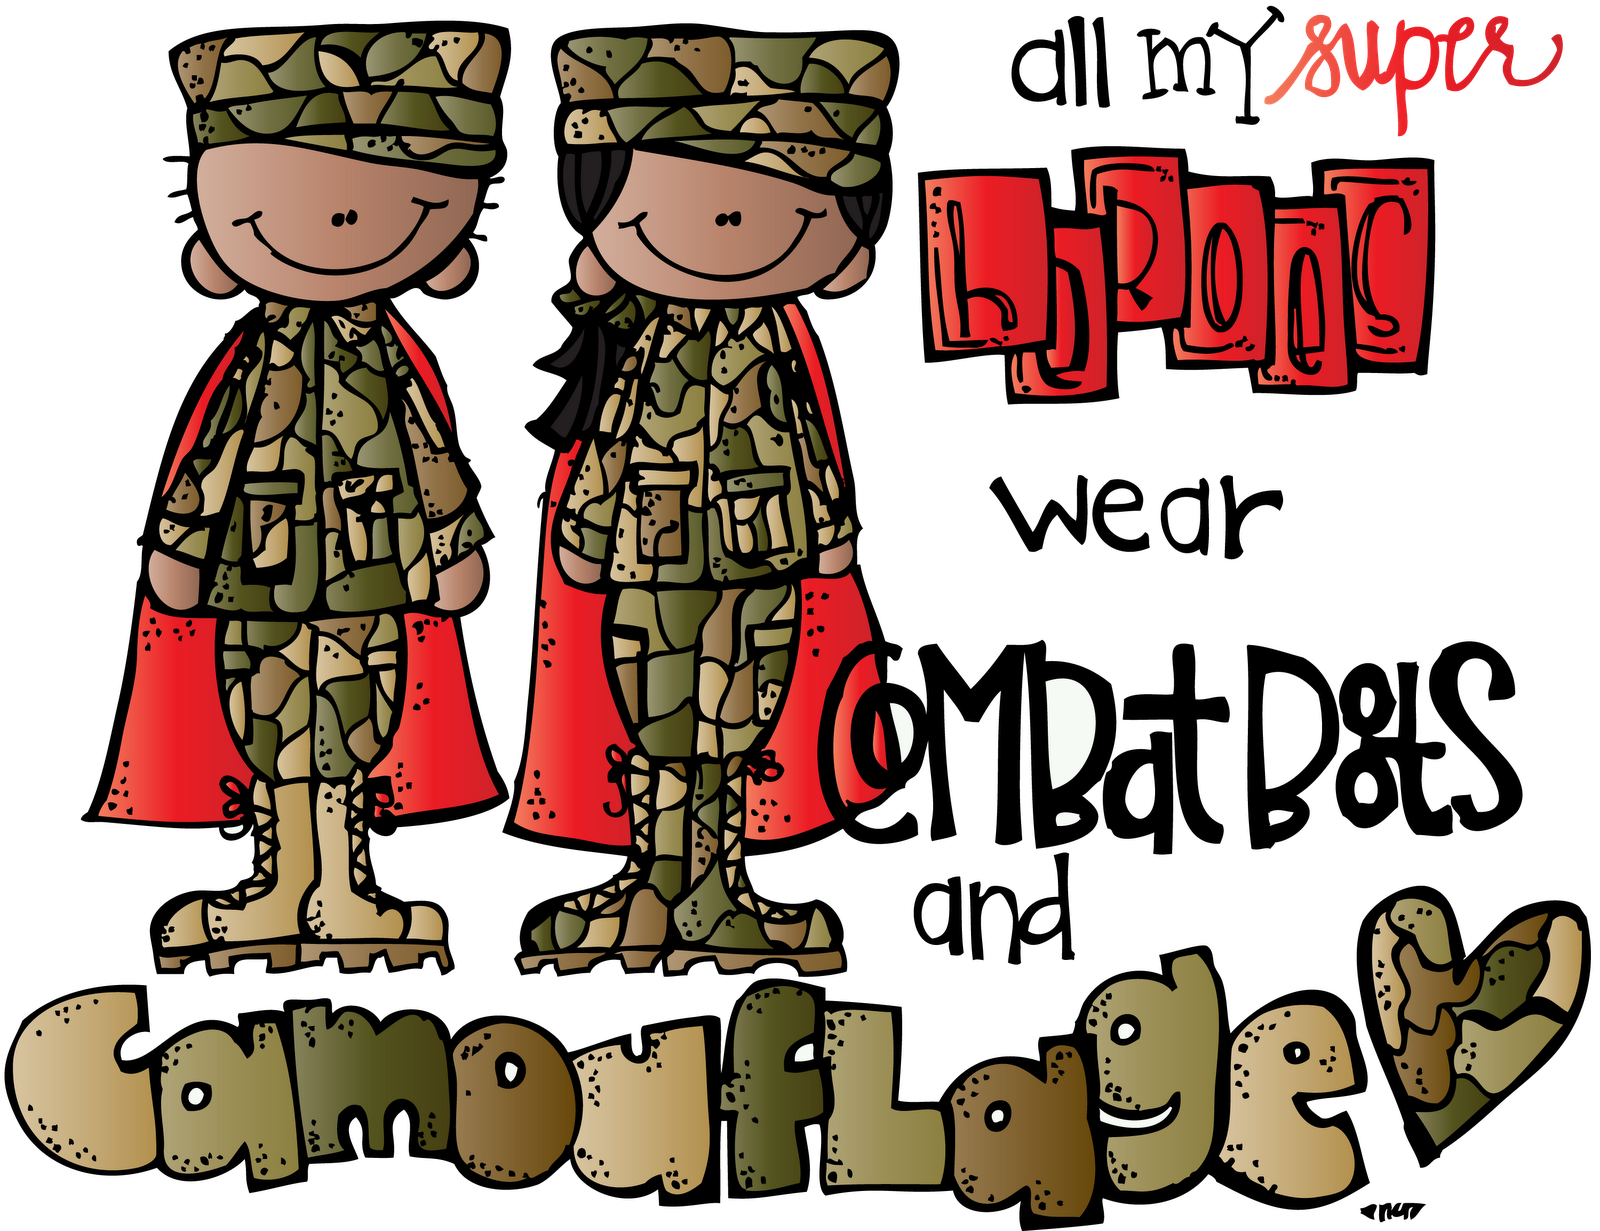 Lds clipart memorial day. Melonheadz happy veterans better